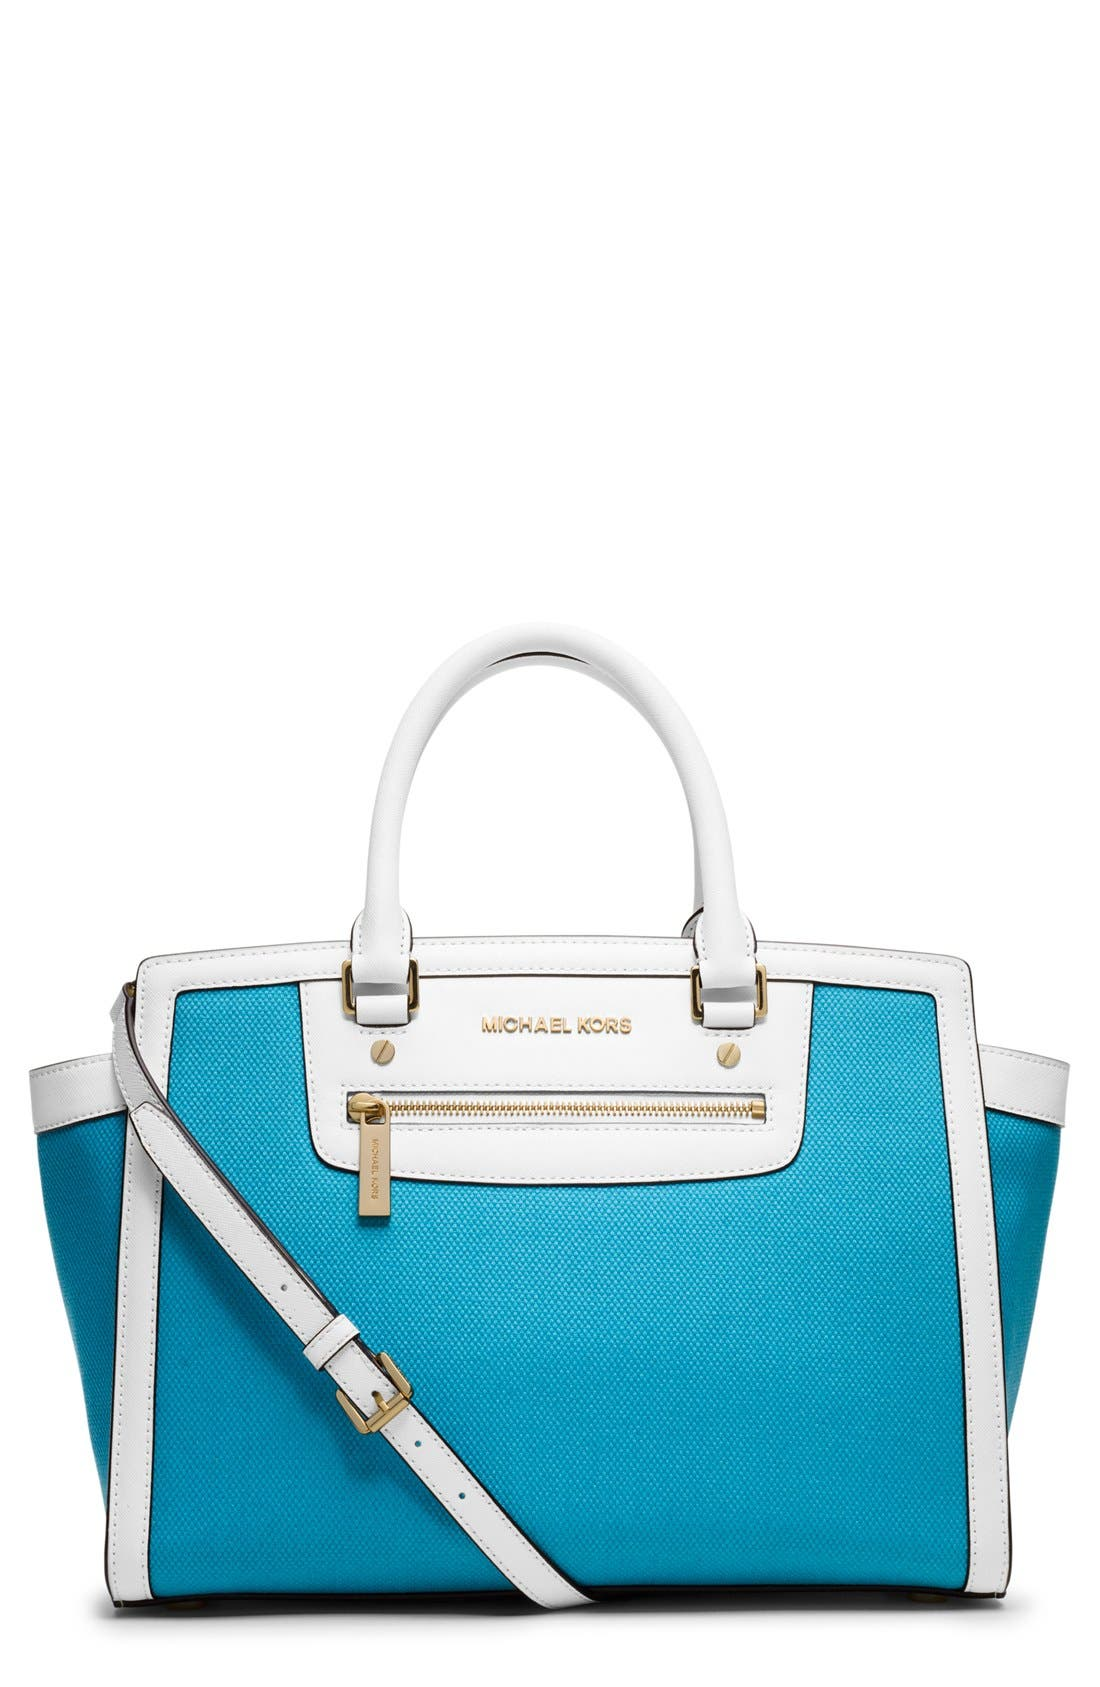 Alternate Image 1 Selected - MICHAEL Michael Kors 'Large Selma' Satchel